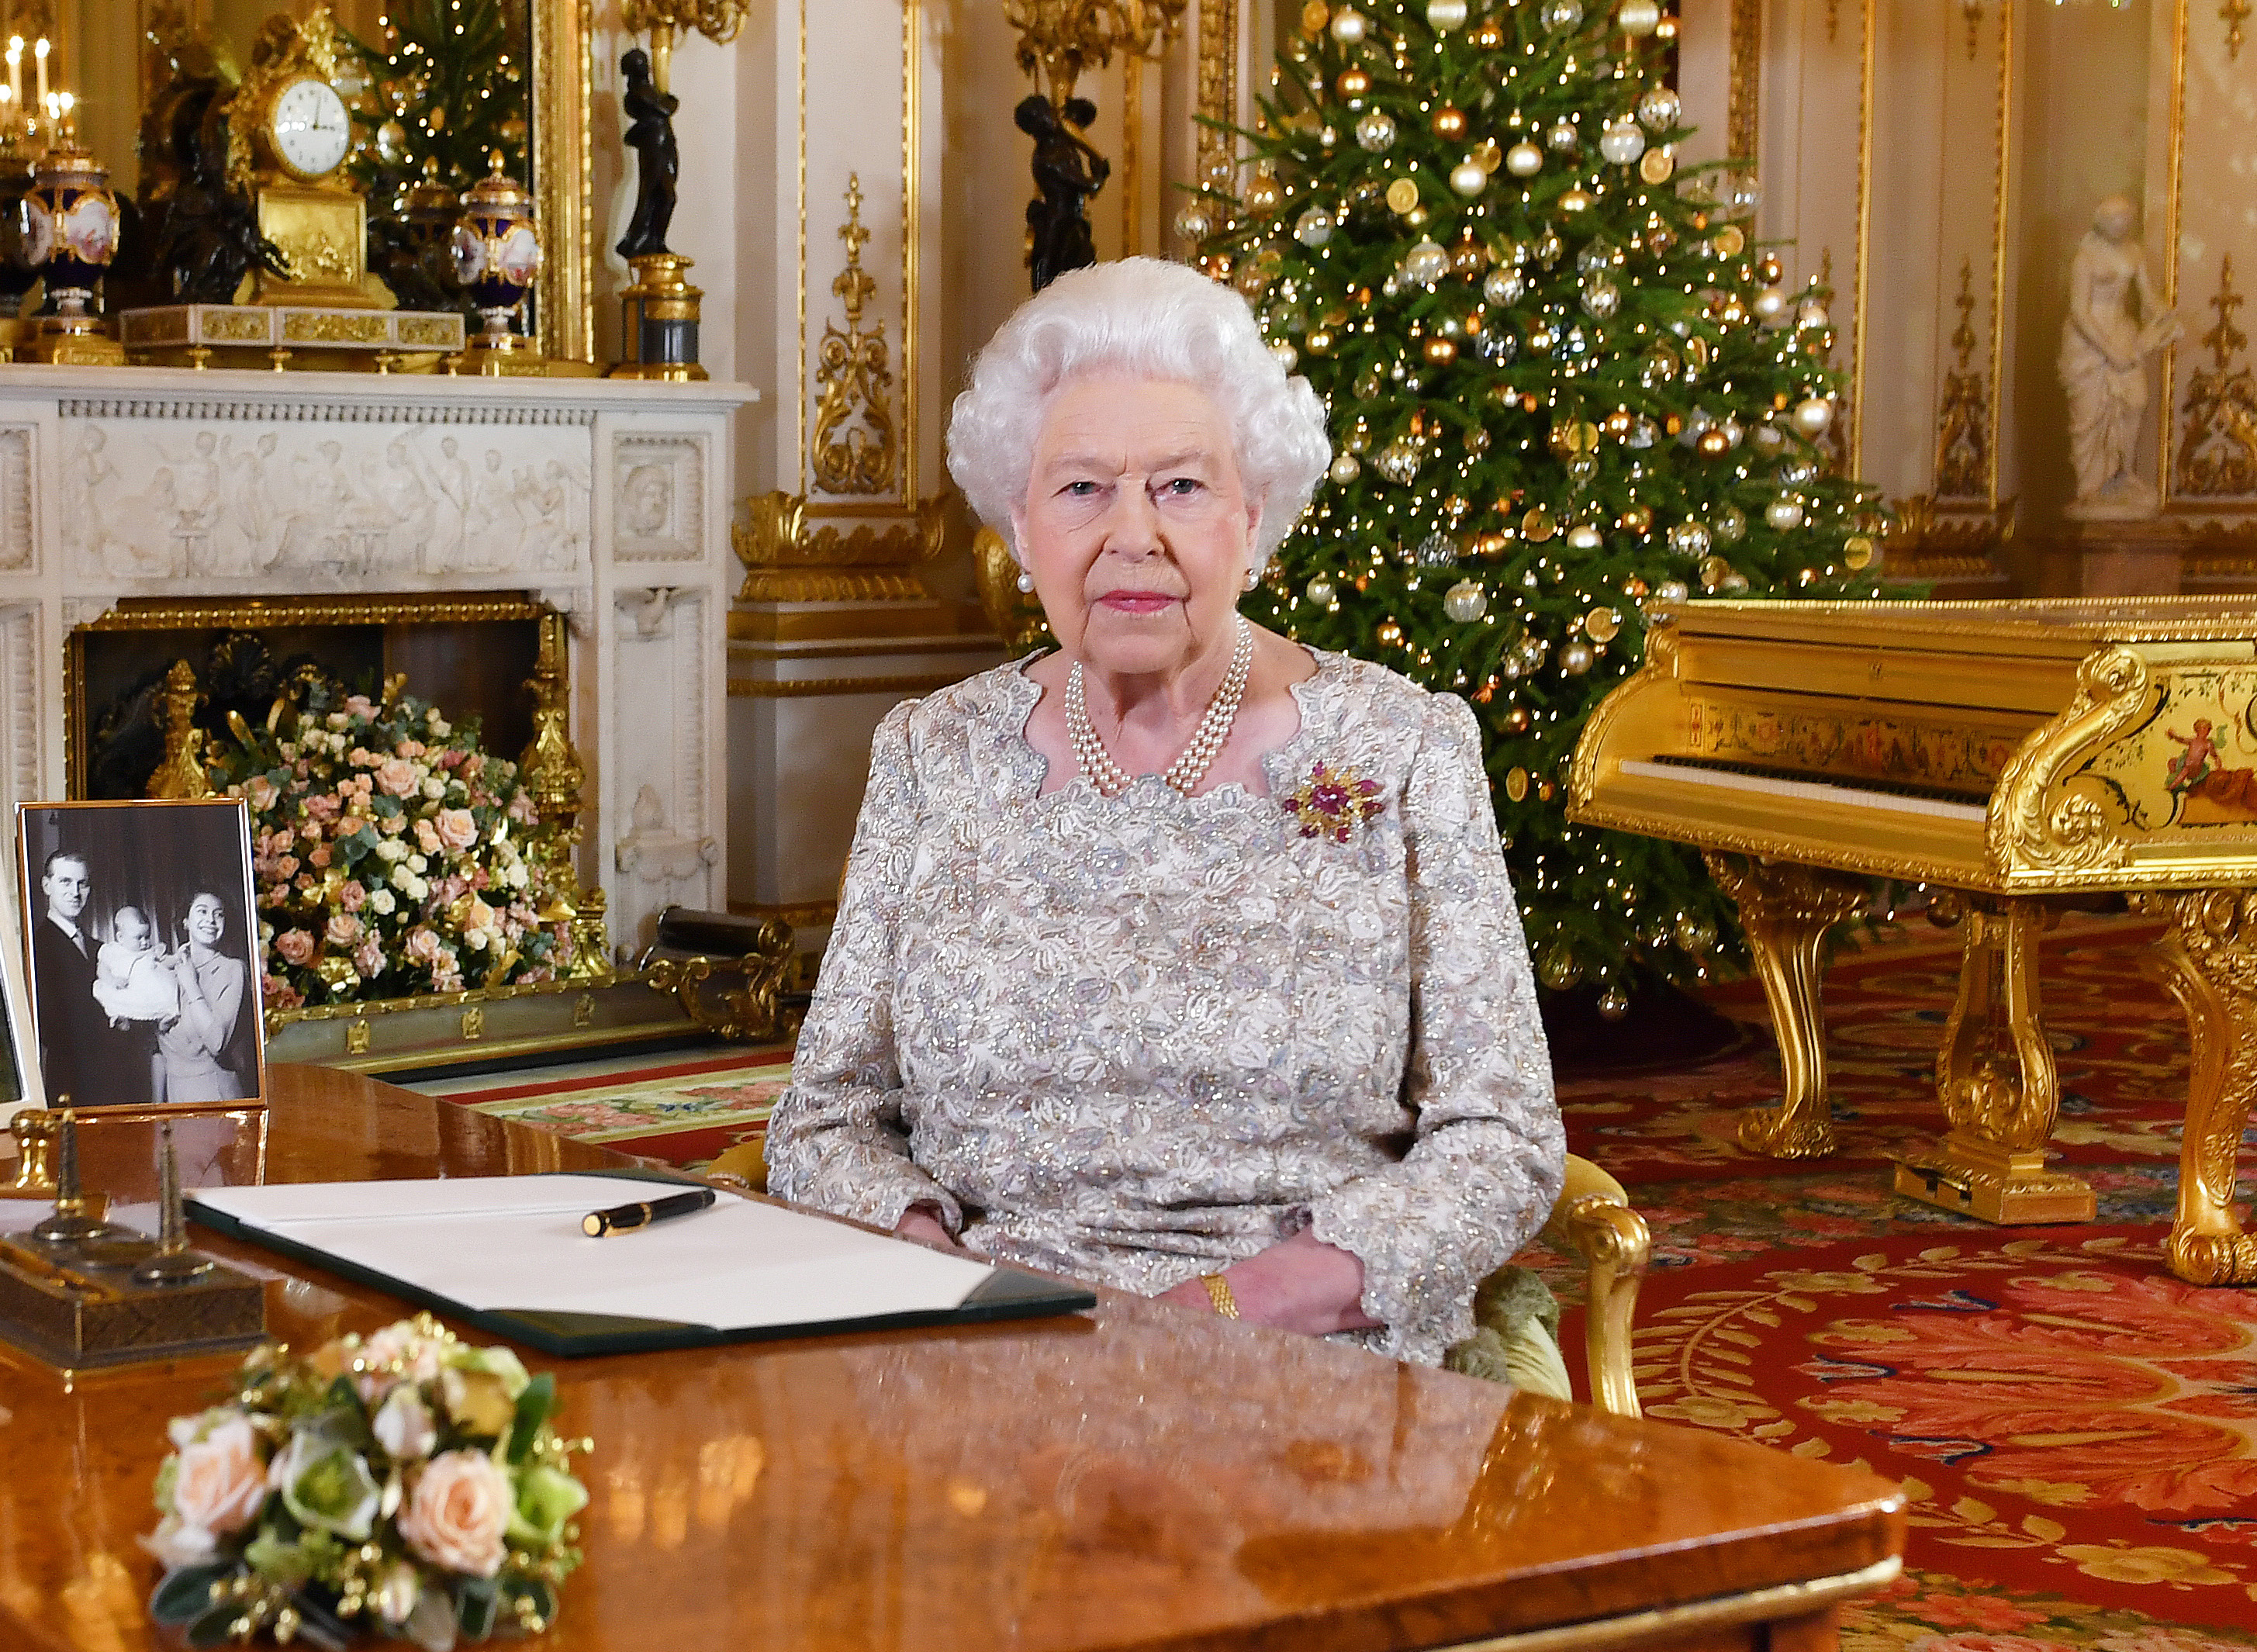 TOPSHOT - A picture released on December 24, 2018 shows Britain's Queen Elizabeth II posing for a photograph after she recorded her annual Christmas Day message, in the White Drawing Room of Buckingham Palace in central London. (Photo by John Stillwell / POOL / AFP)        (Photo credit should read JOHN STILLWELL/AFP via Getty Images)